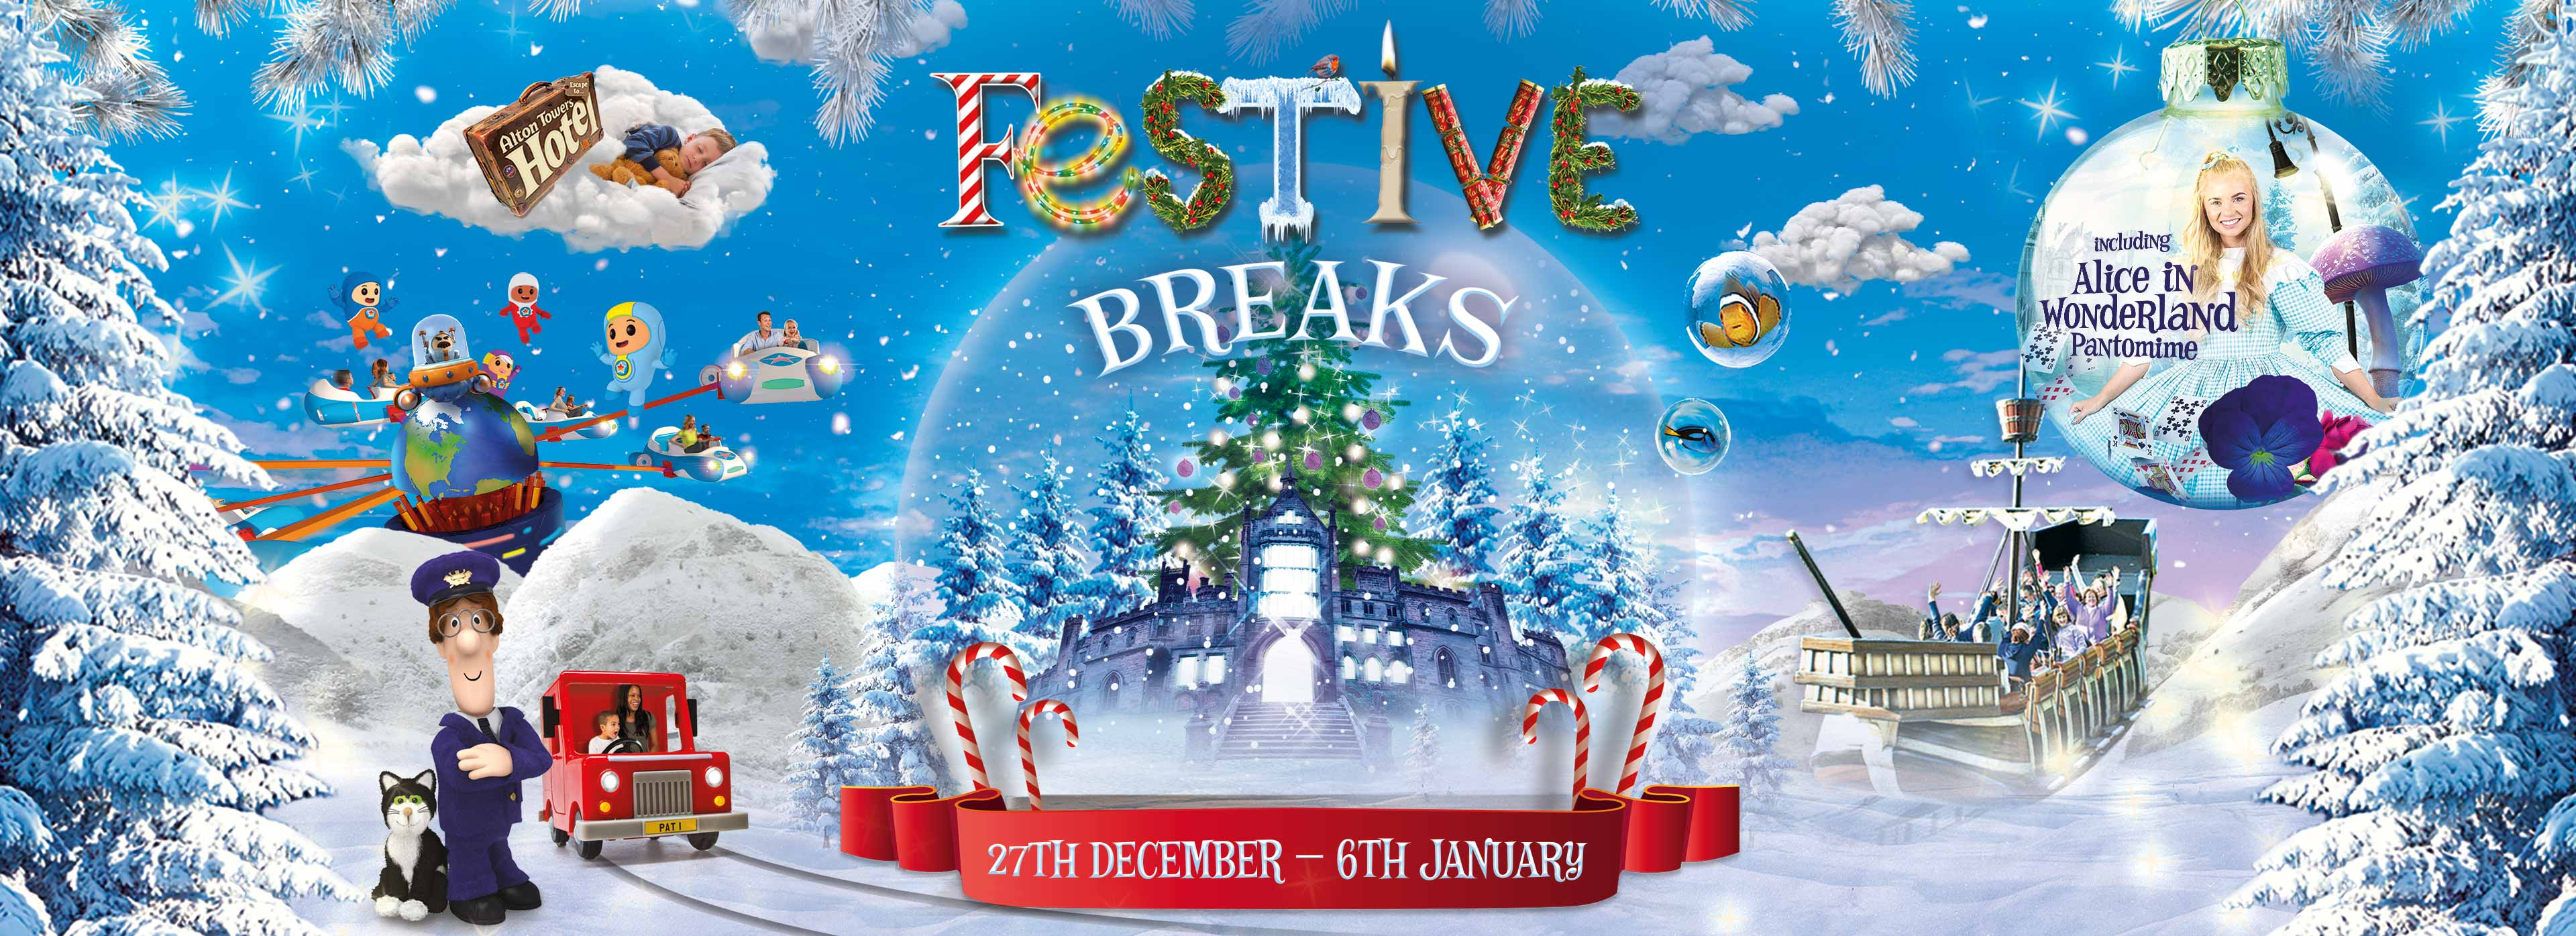 Festive Breaks 2018 at the Alton Towers Resort